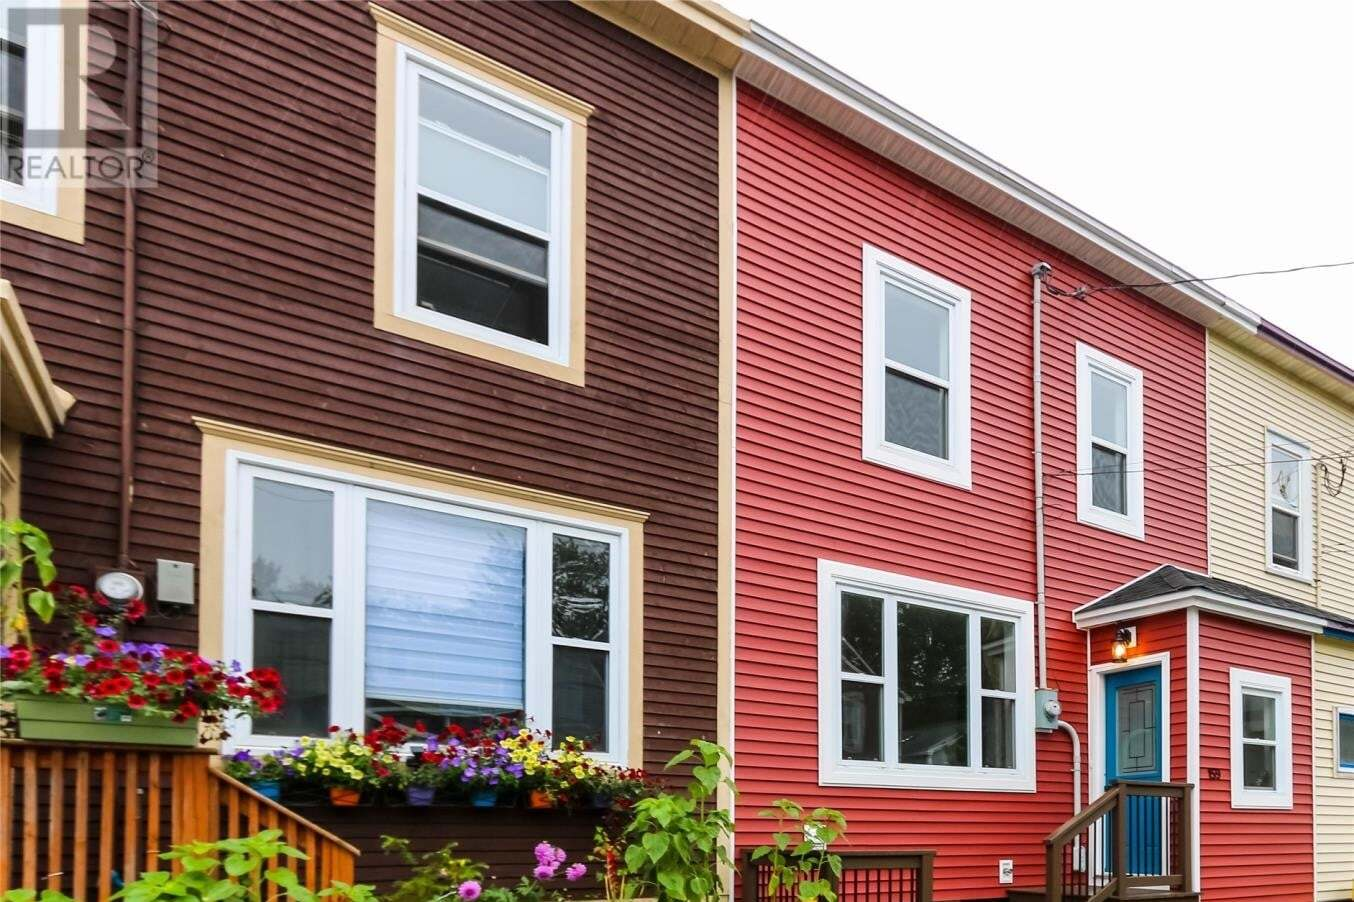 House for sale at 159 Craigmillar Ave St. Johns Newfoundland - MLS: 1221278